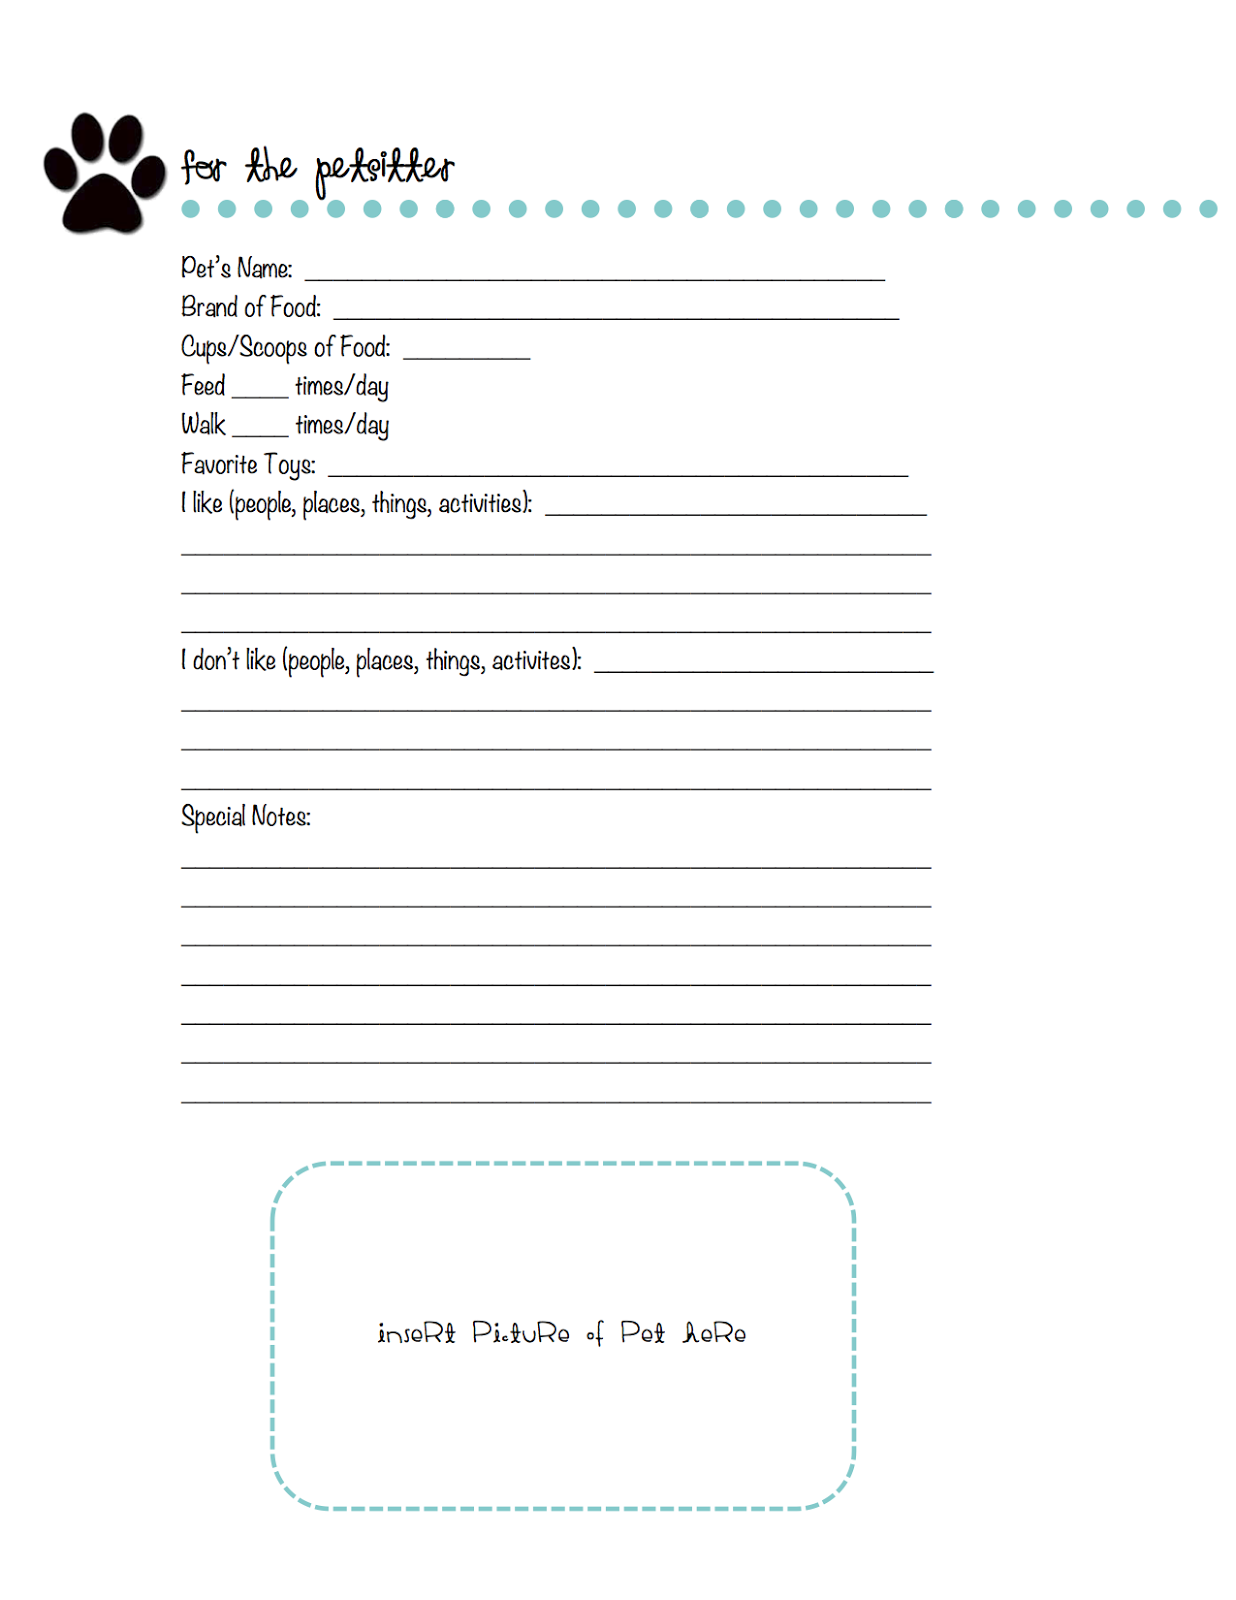 free printable pet sitting forms koni polycode co